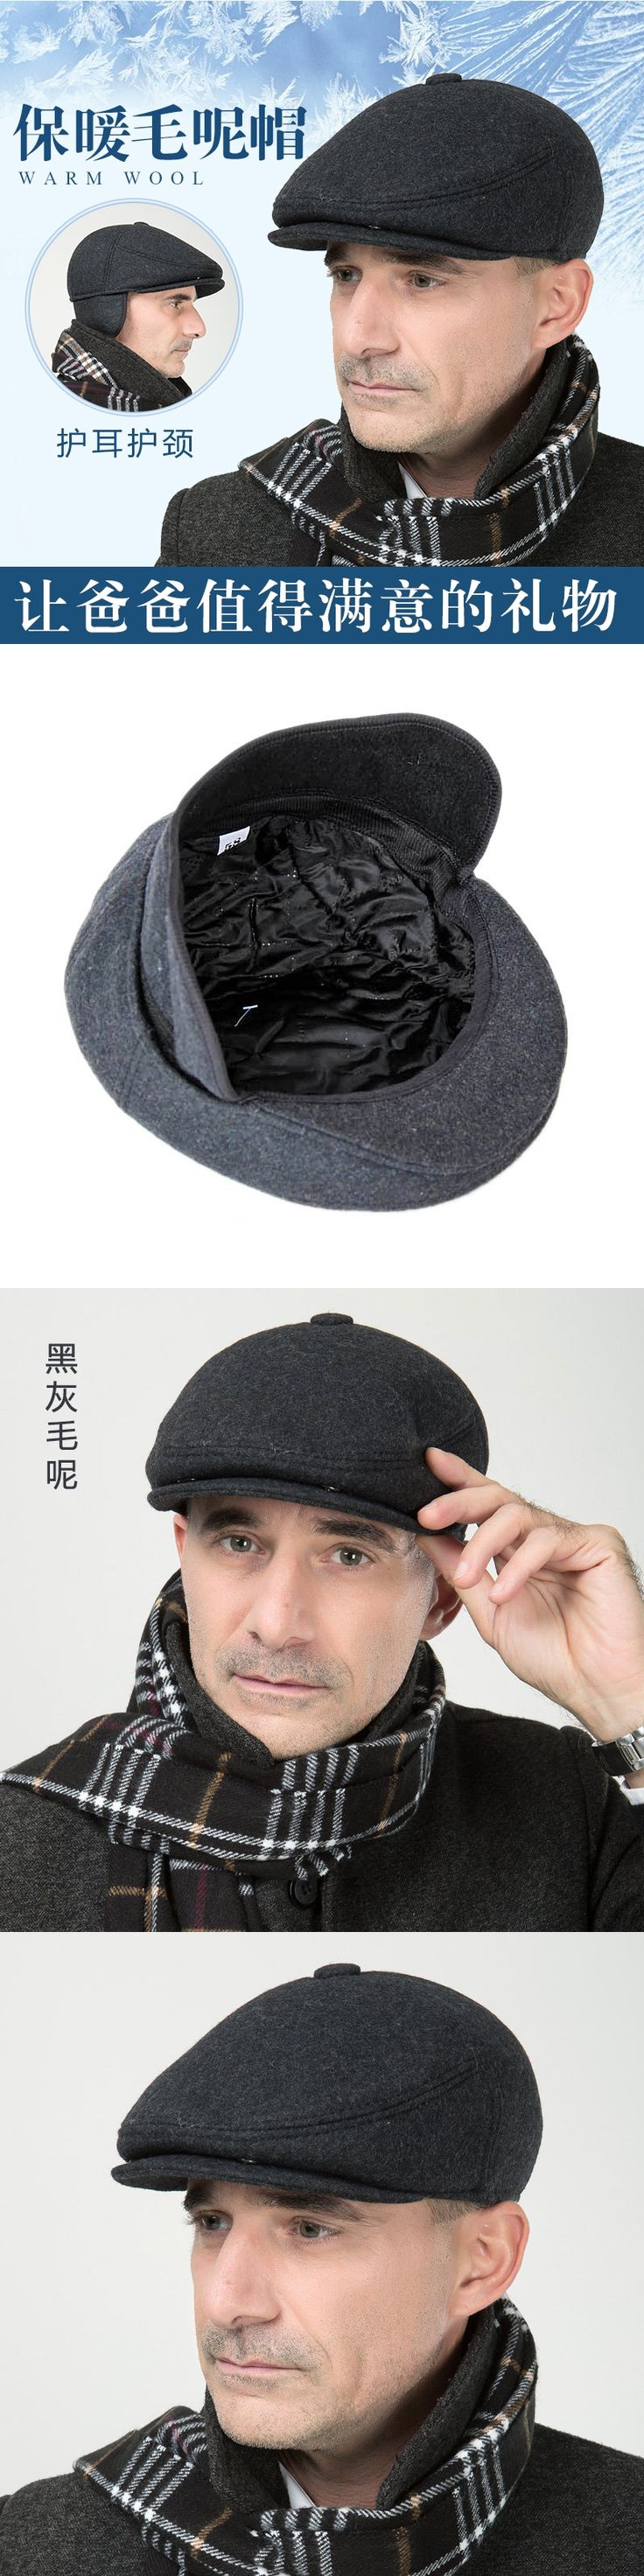 Elder Man Winter Warm Baseball Hat Male Fashion Fur Earmuffs Cap Father Peaked Cap Quinquagenarian Earmuffs Hat B-7378